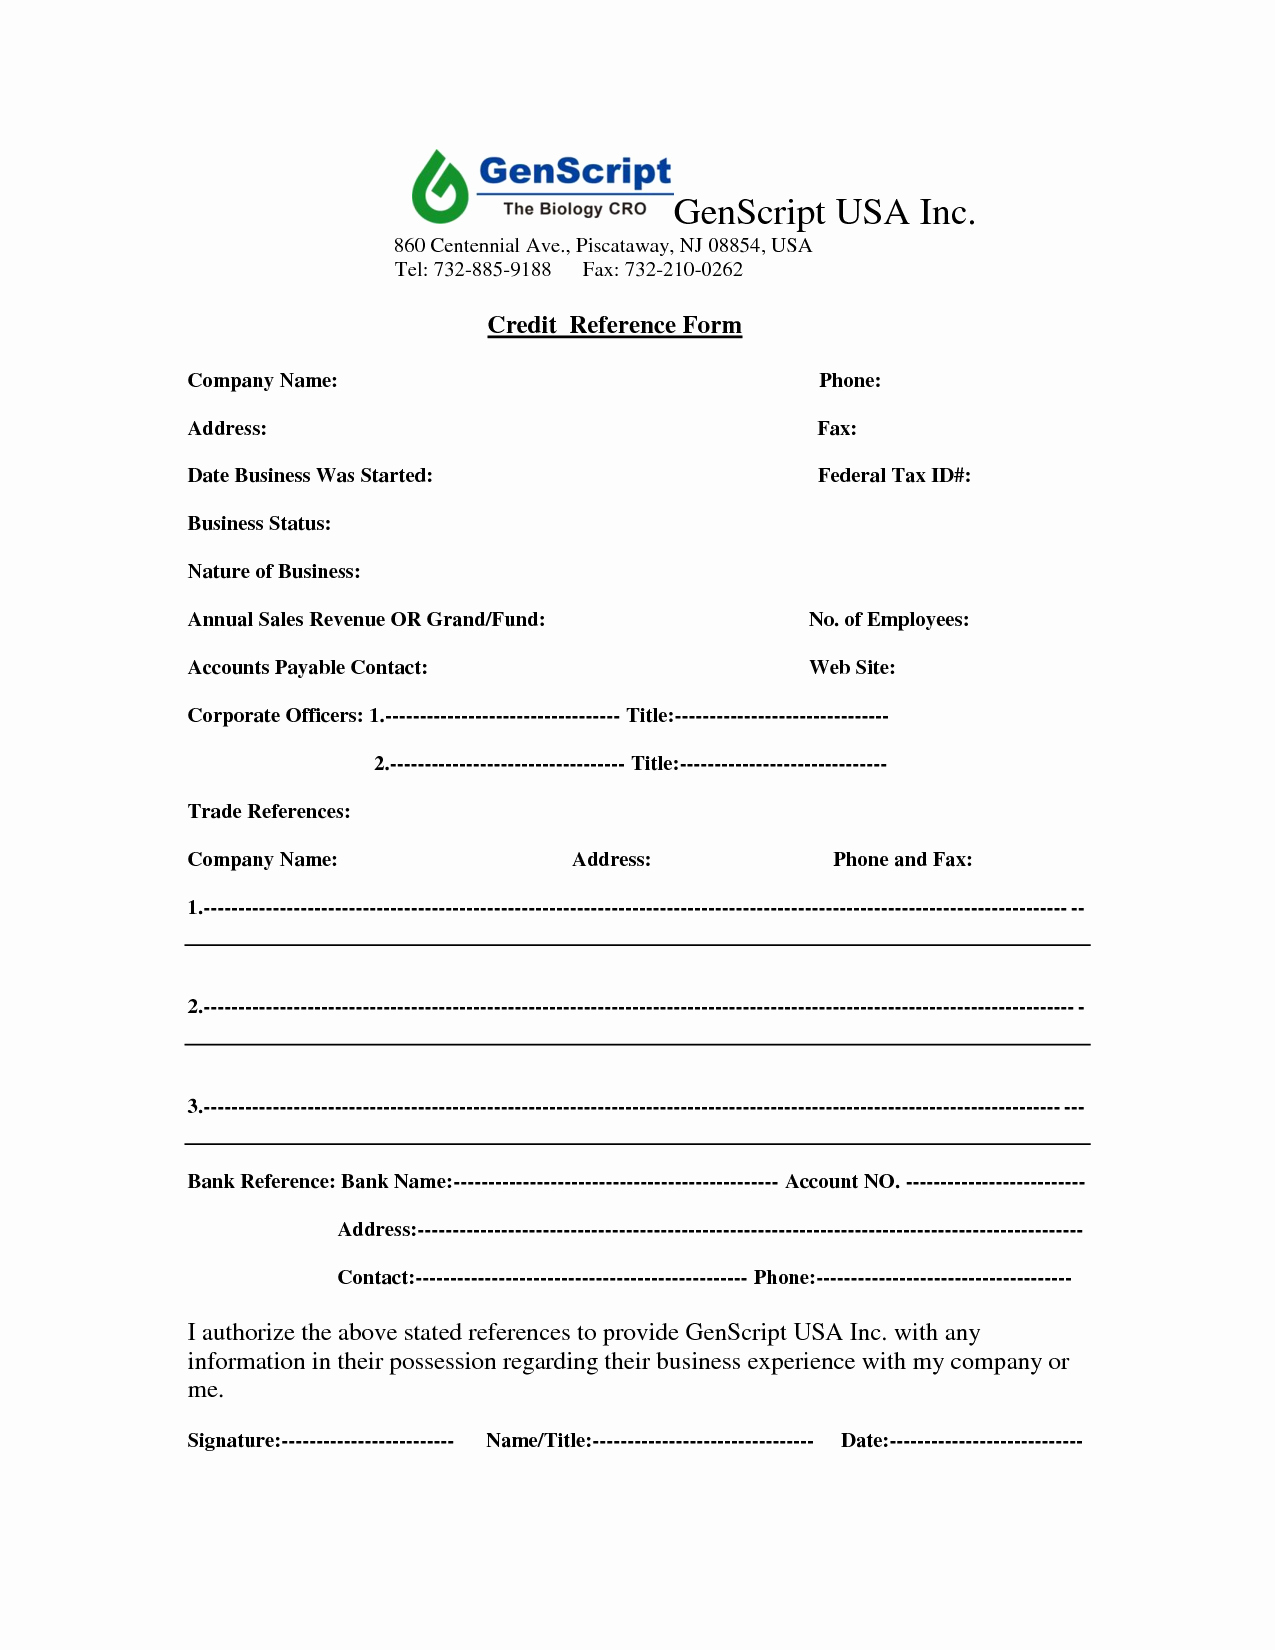 Credit Reference form Template Luxury Business Credit Reference form Free Printable Documents